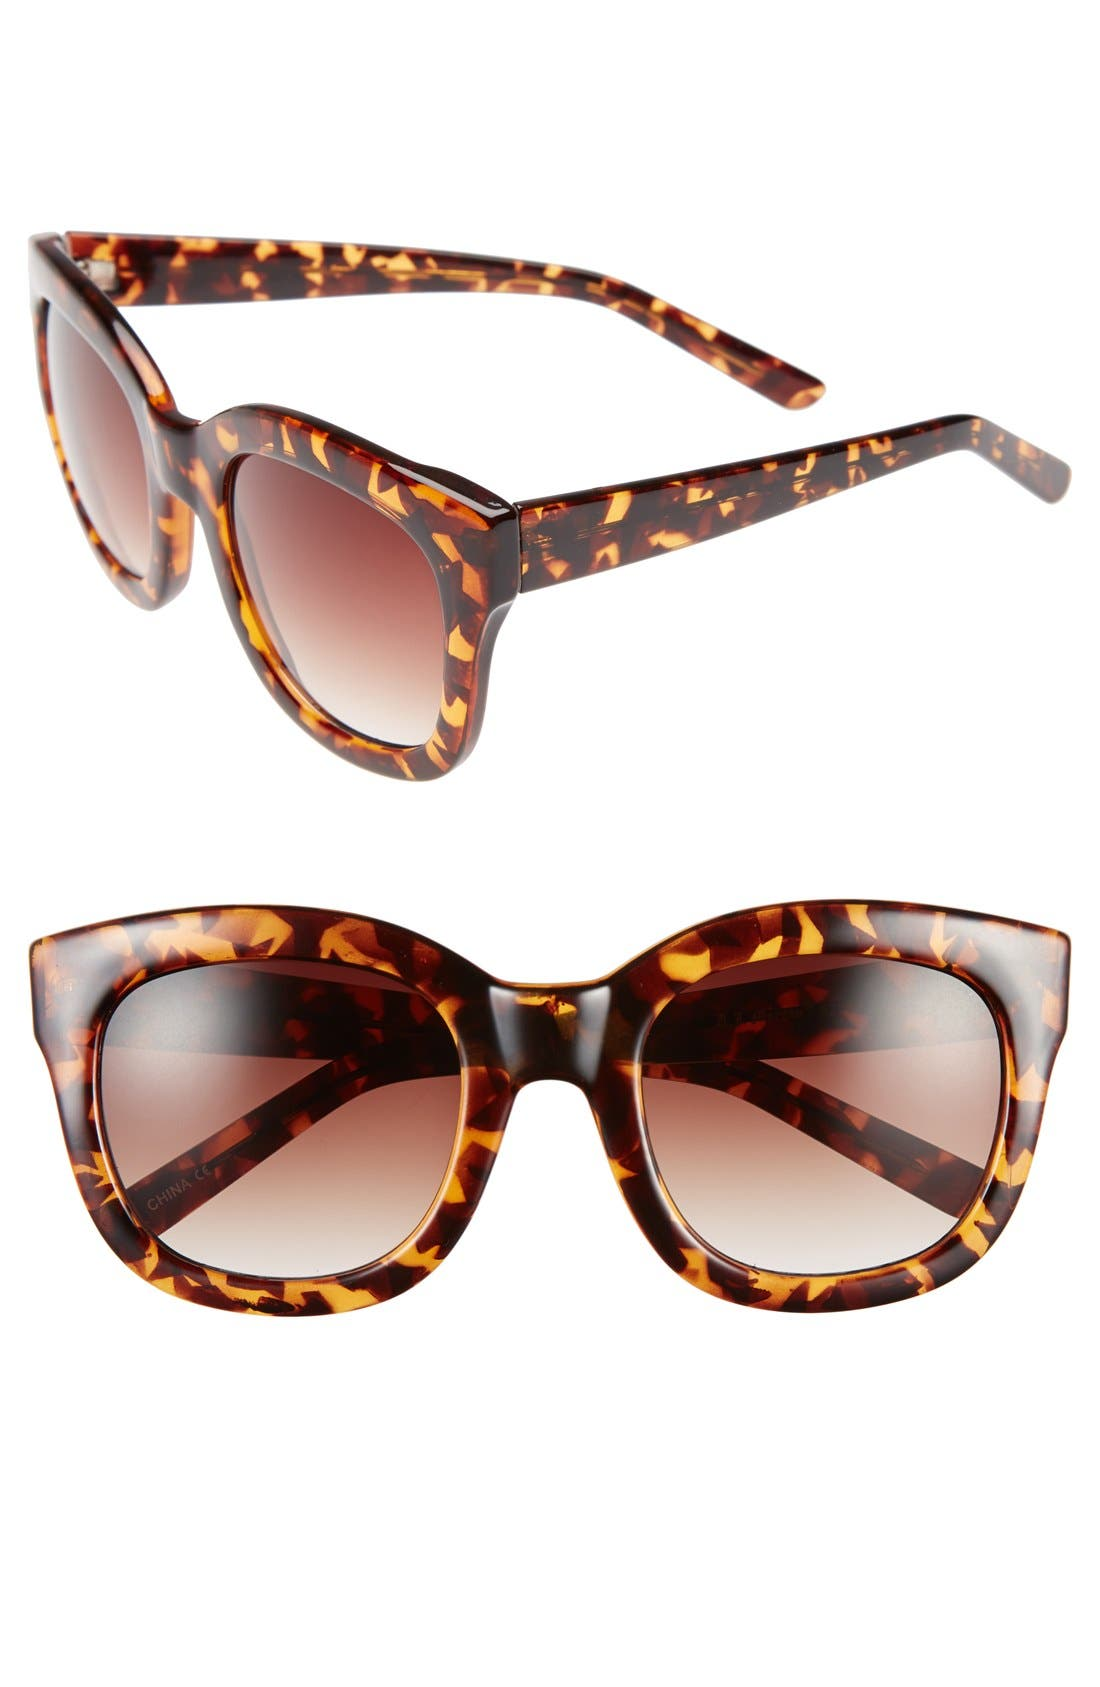 Main Image - A.J. Morgan 'Feline' 54mm Oversized Cat Eye Sunglasses